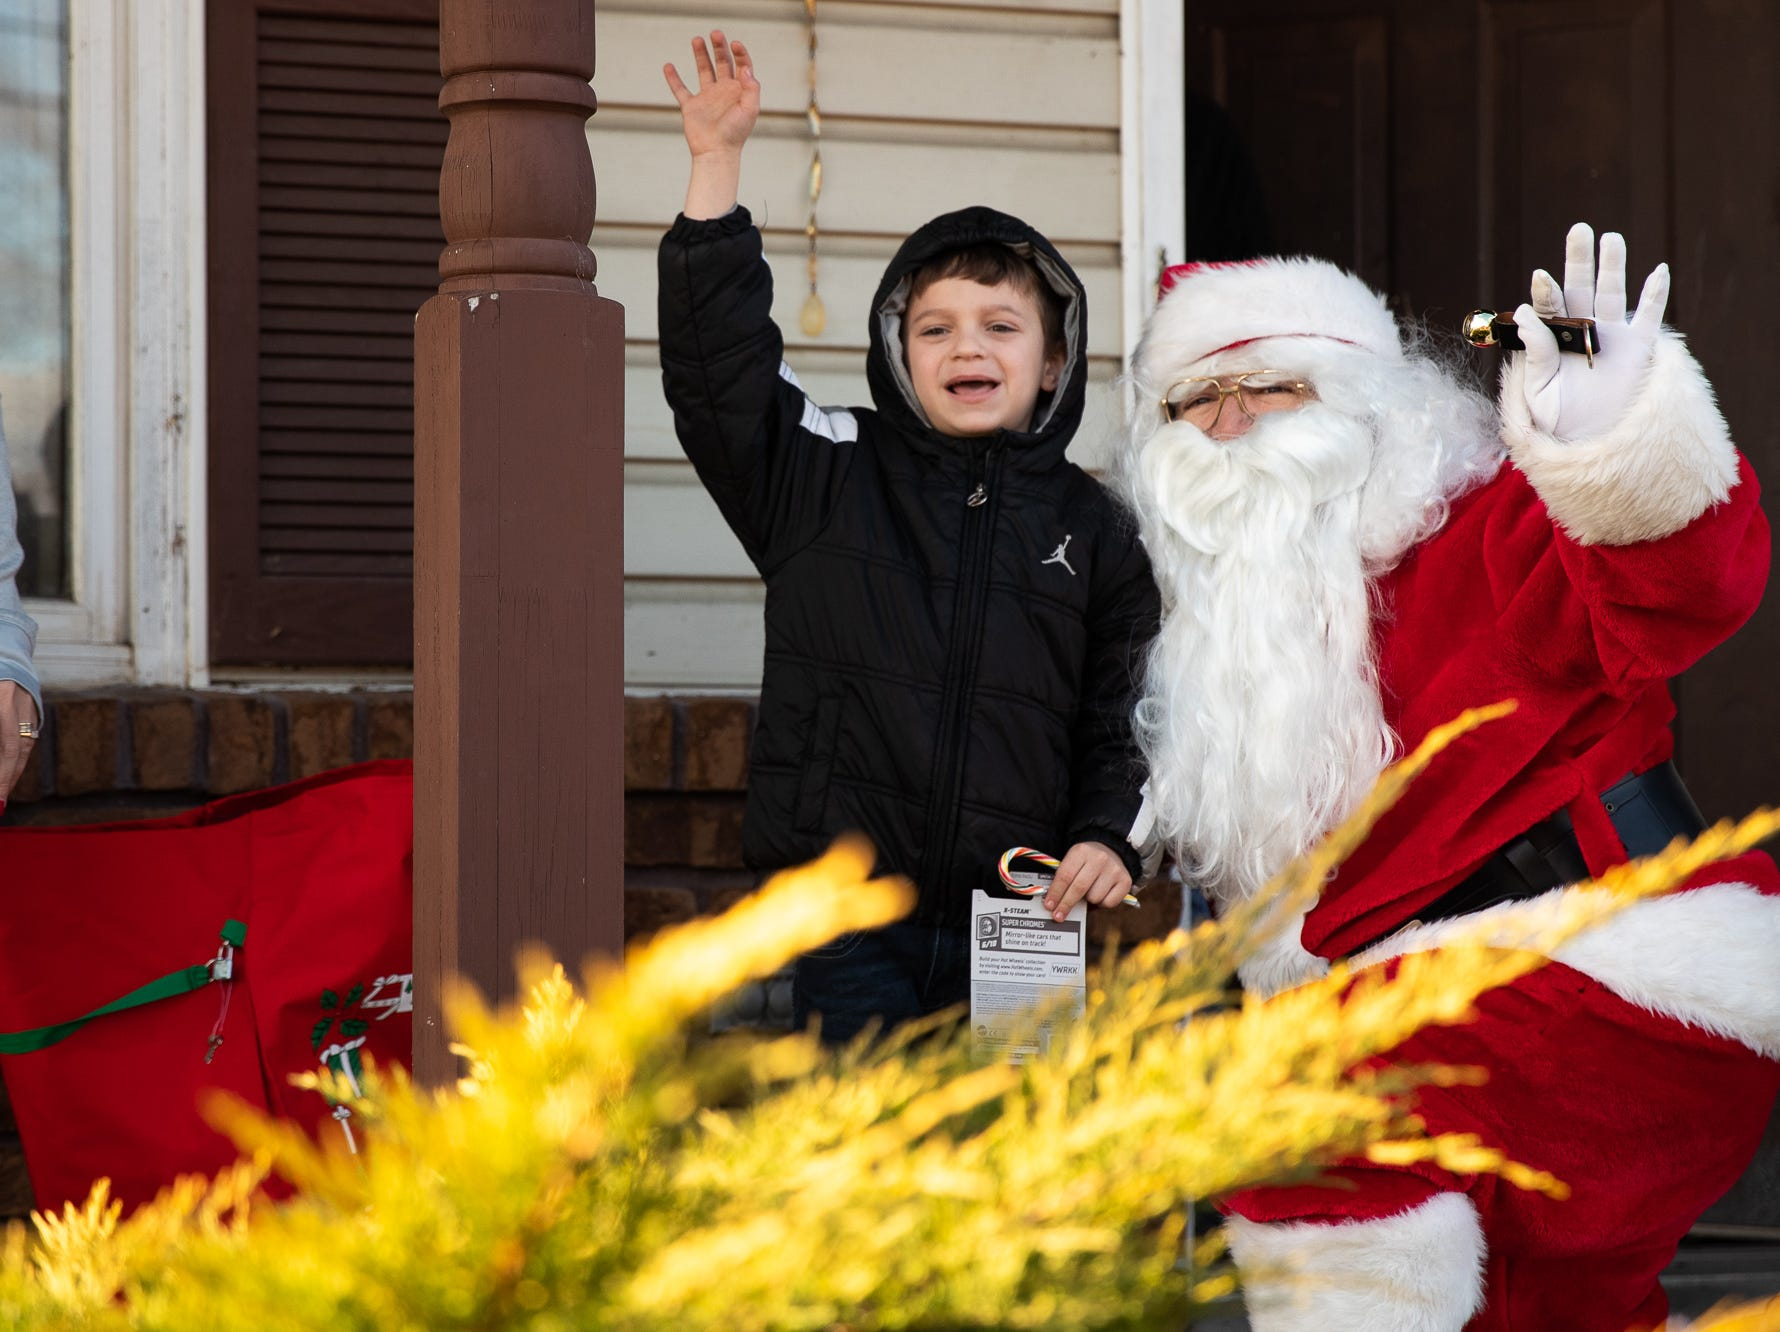 Breiden, 7, waves to the fire engines along with Santa, played by firefighter Wayne Reid, during the S.A.V.E.S Project Santa, Saturday, Dec. 22, 2018, in McSherrystown Borough. The S.A.V.E.S Project Santa donated food, toys, and clothing to 12 local families in need.